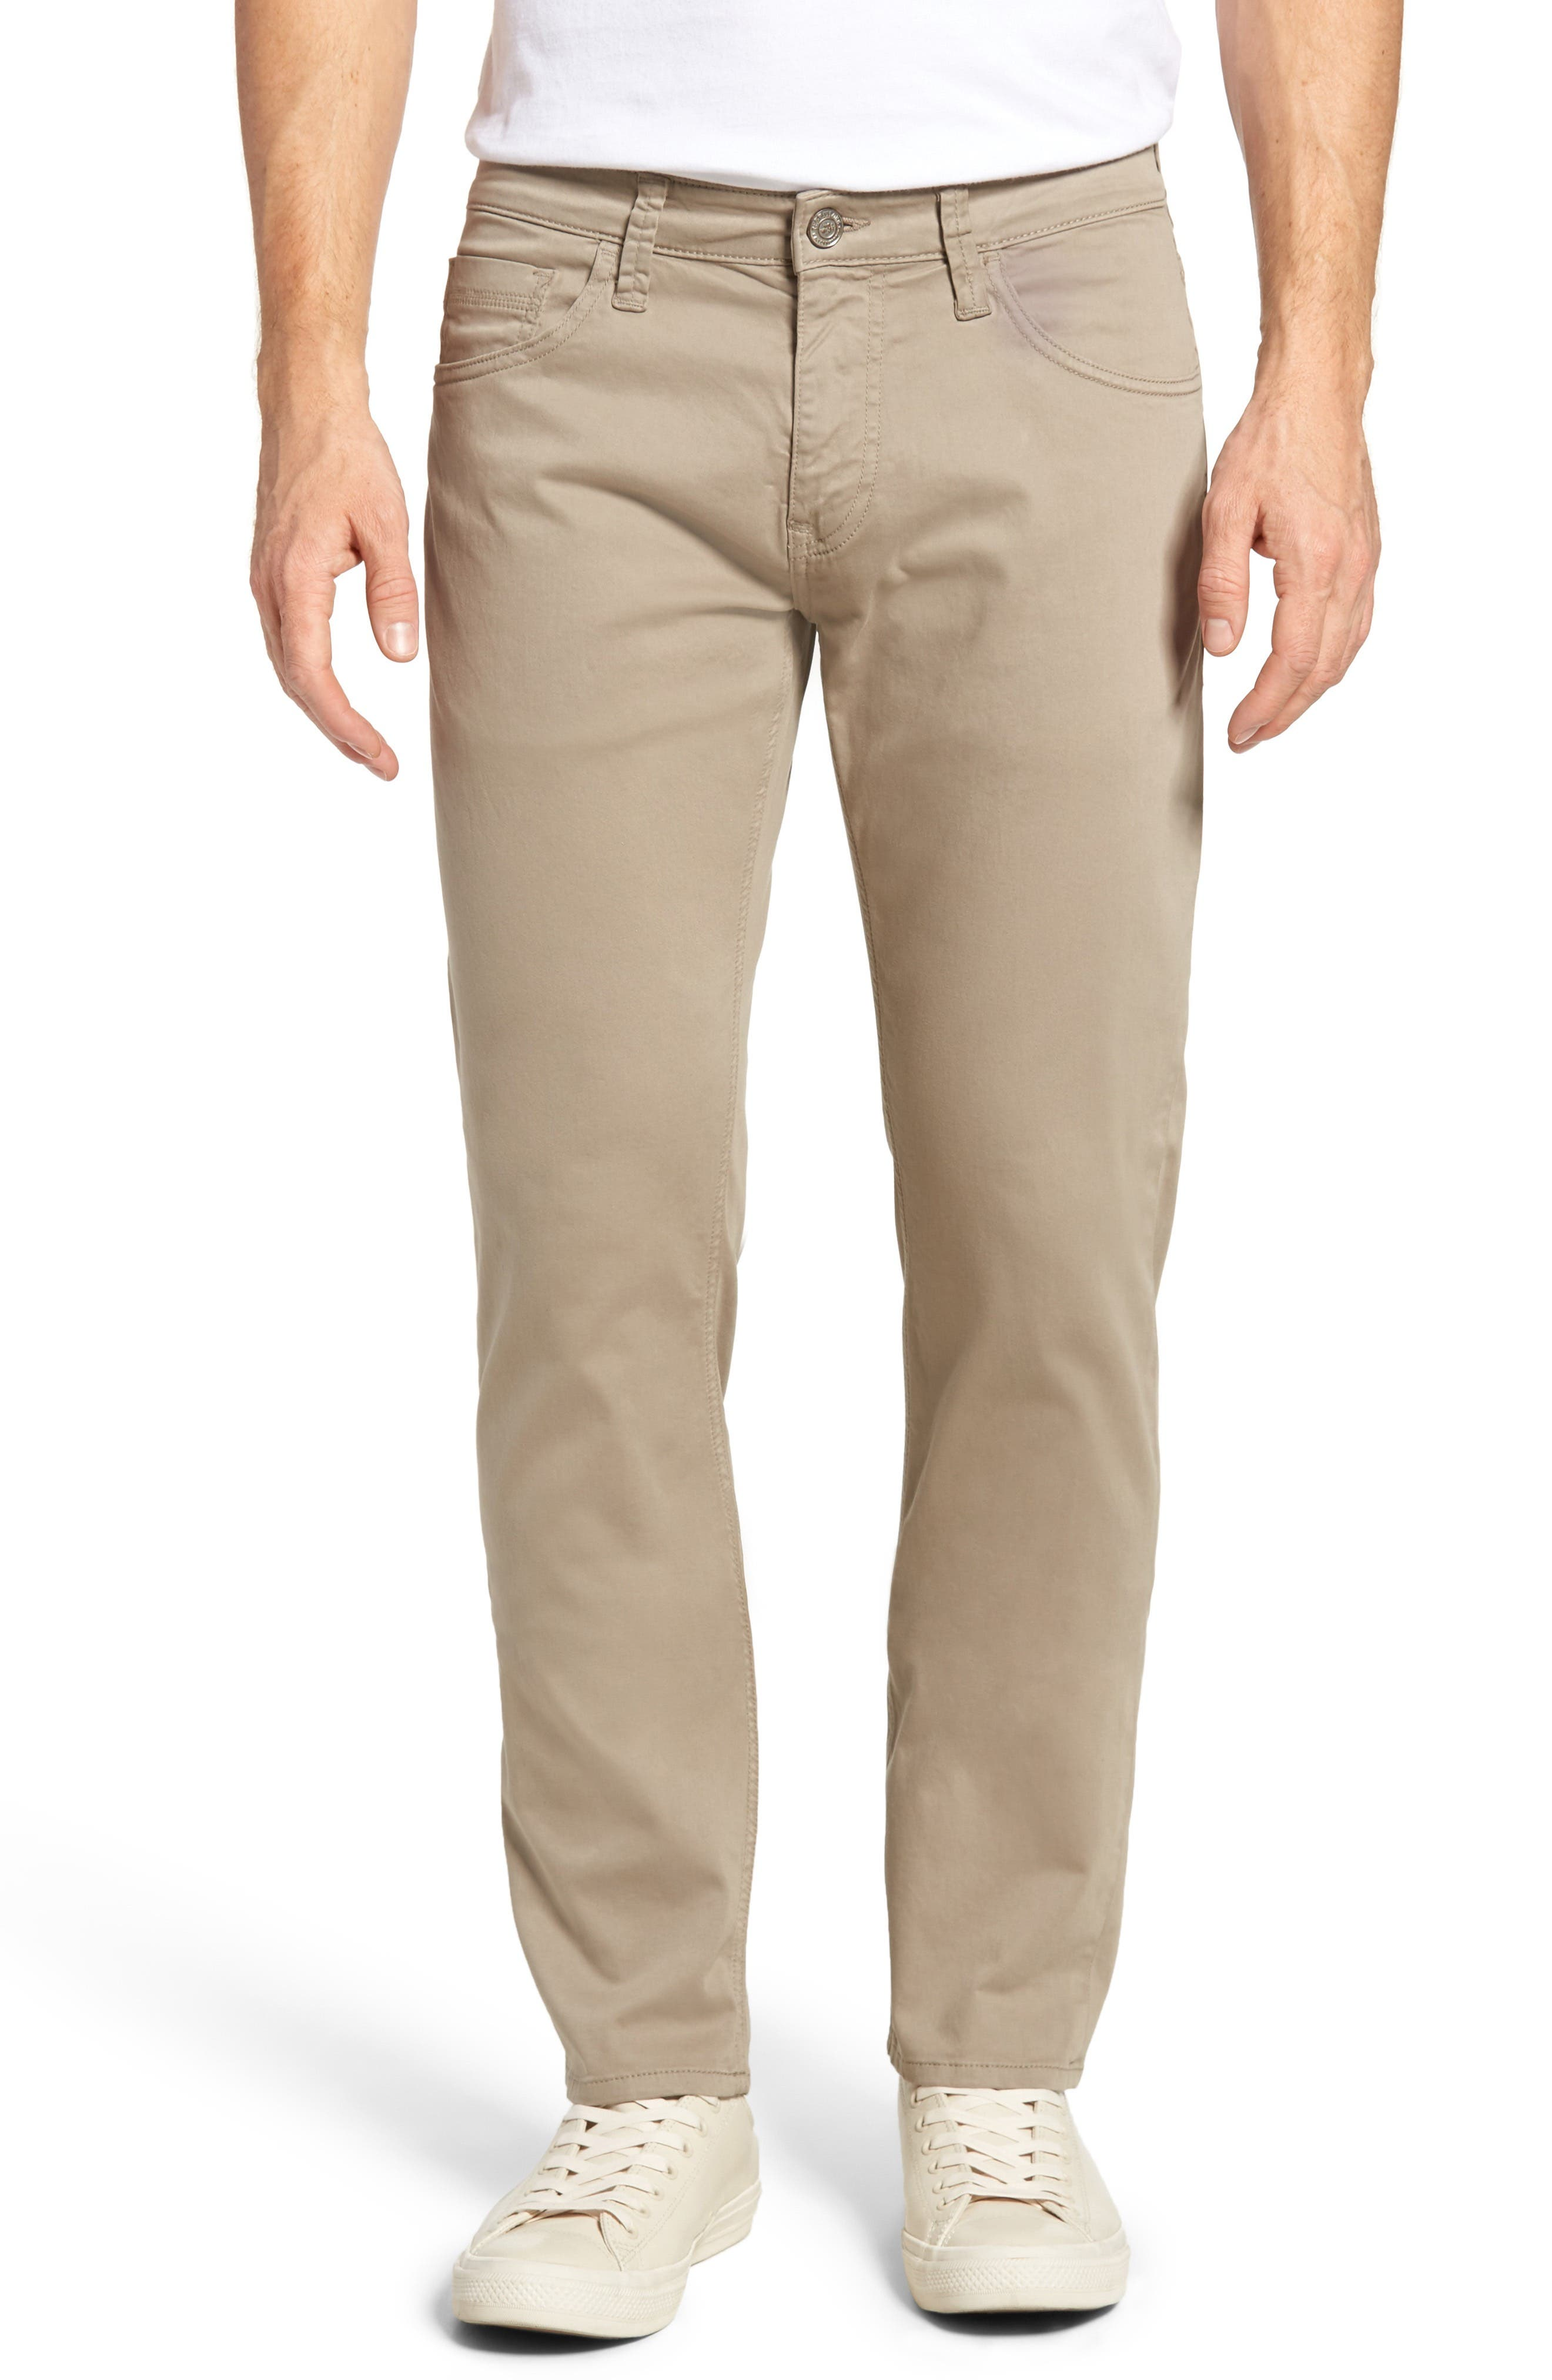 Zach Straight Leg Twill Pants,                         Main,                         color, BEIGE TWILL